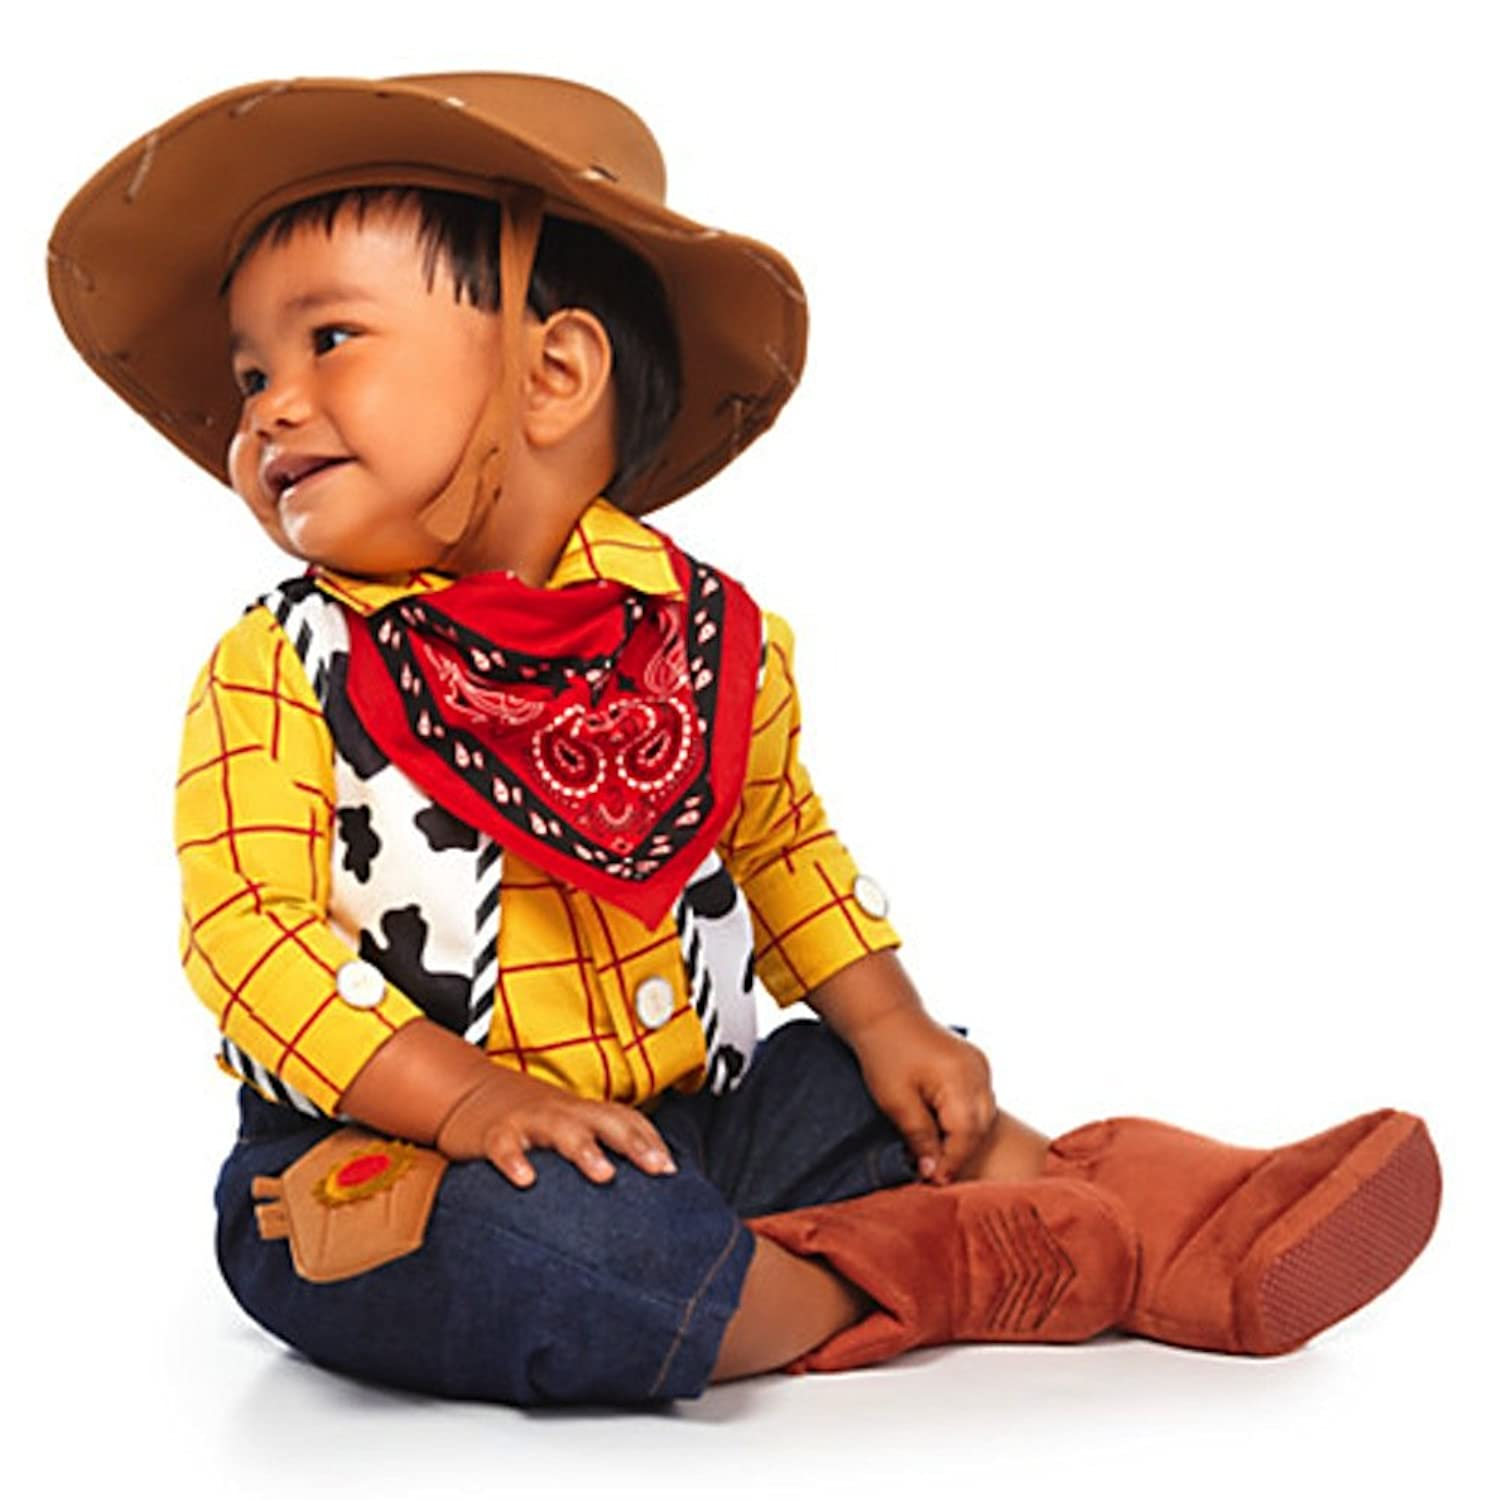 Amazon.com: Disney Deluxe Toy Story Woody Costume for Baby Boys ...